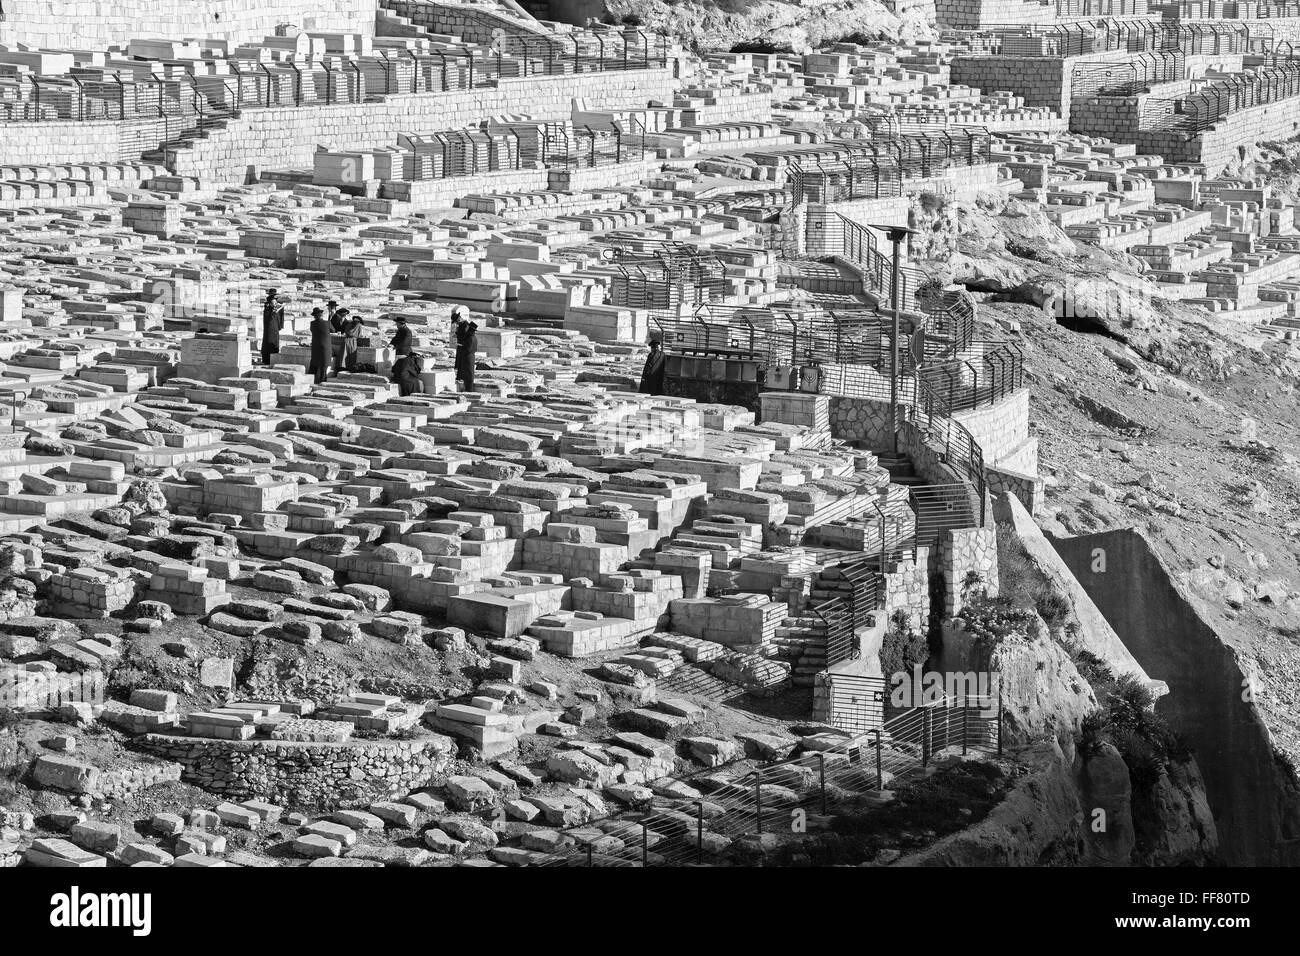 JERUSALEM, ISRAEL - MARCH 3, 2015:  The jewish cemetery on the Mount of Olives and burial of orthodox Jews. - Stock Image